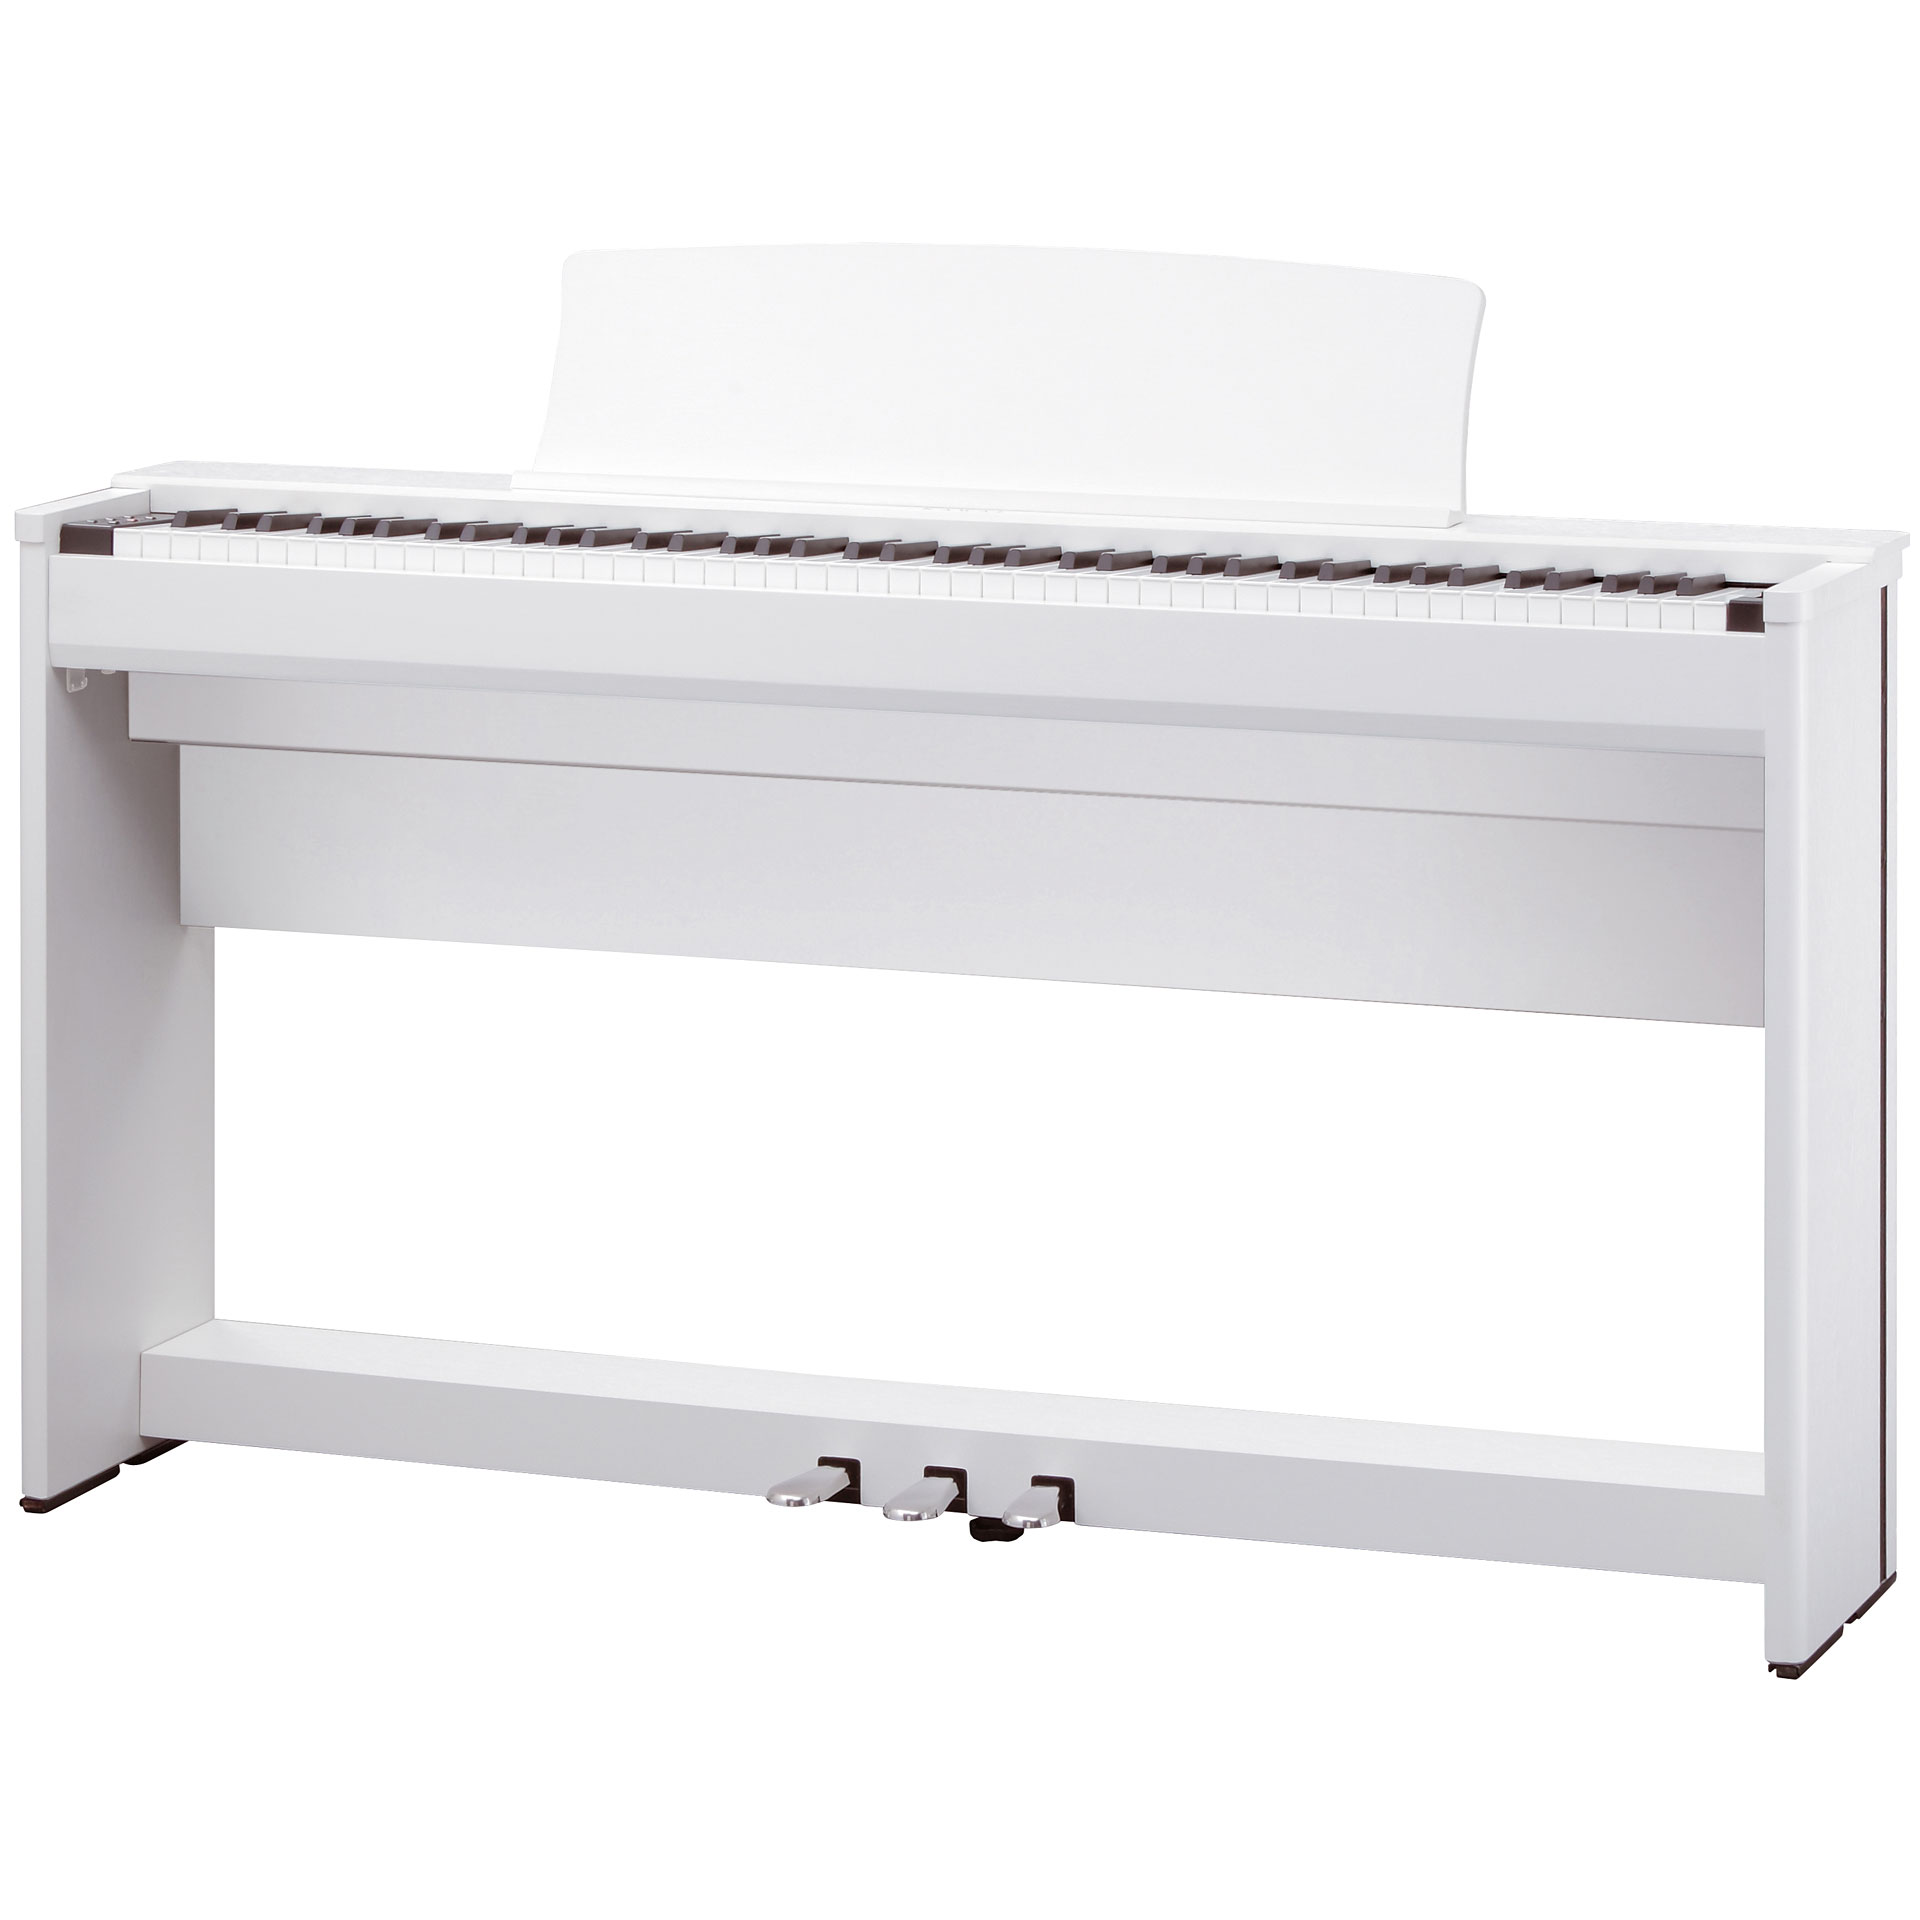 Cl36|digital pianos|products|kawai musical instruments.